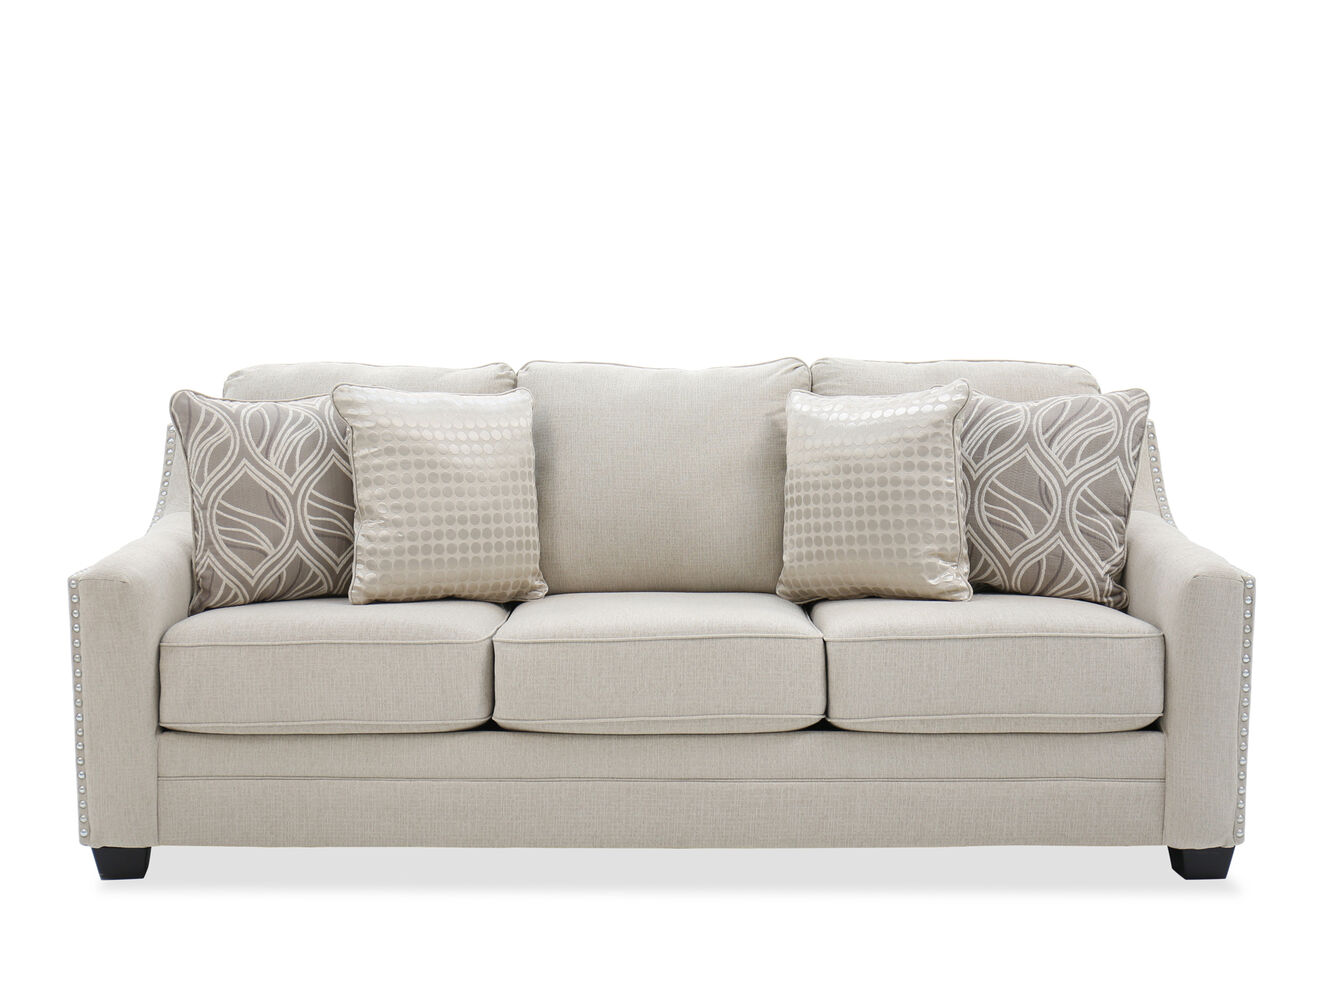 Straight arm 92 sofa in linen mathis brothers furniture for Sofa tela nautica